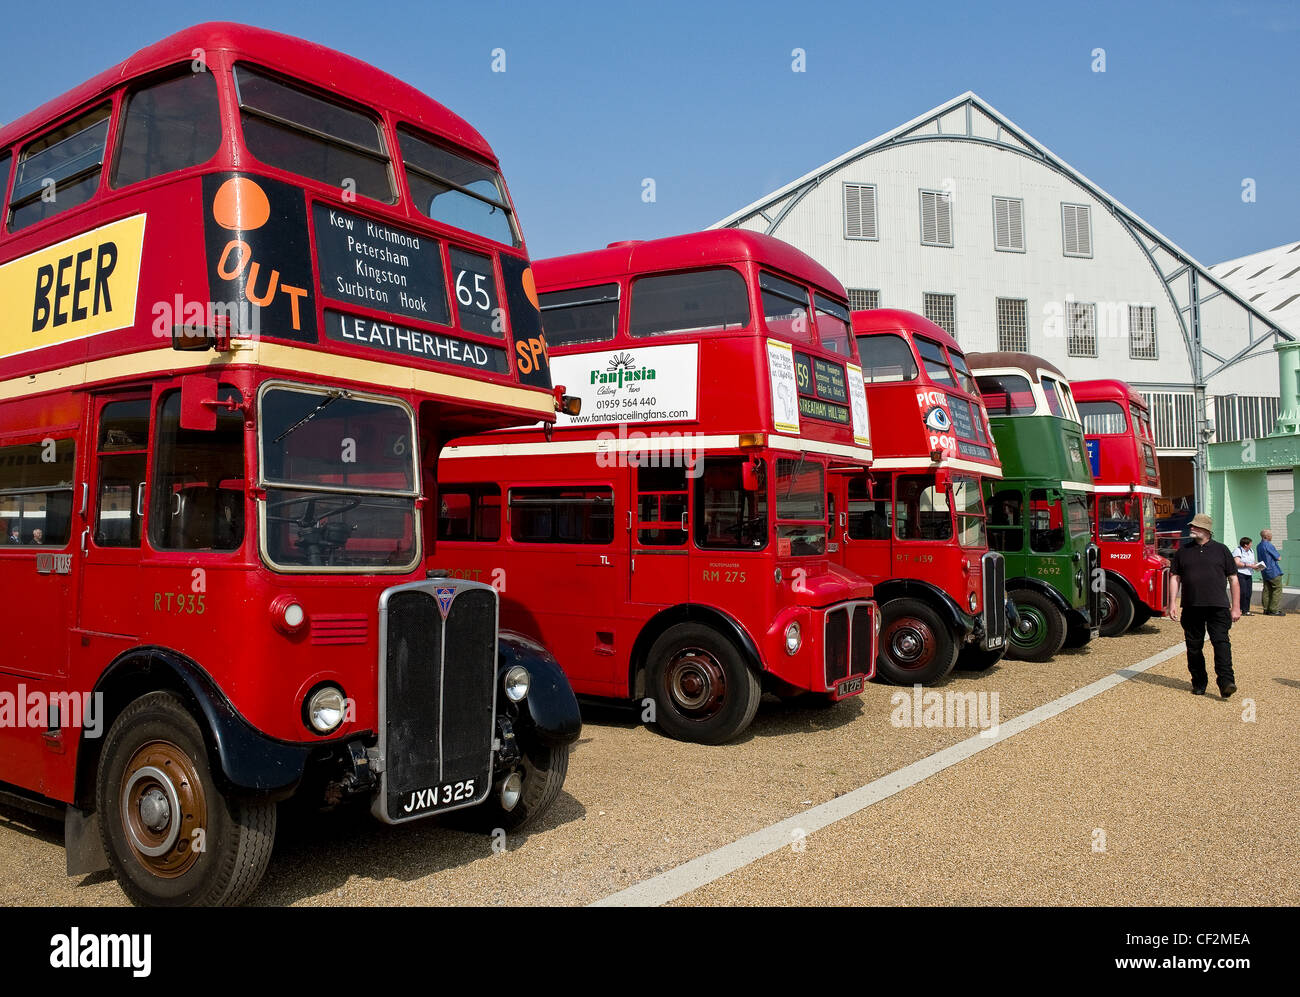 A line of historic double decker buses on display at the Chatham Historic Dockyard. - Stock Image